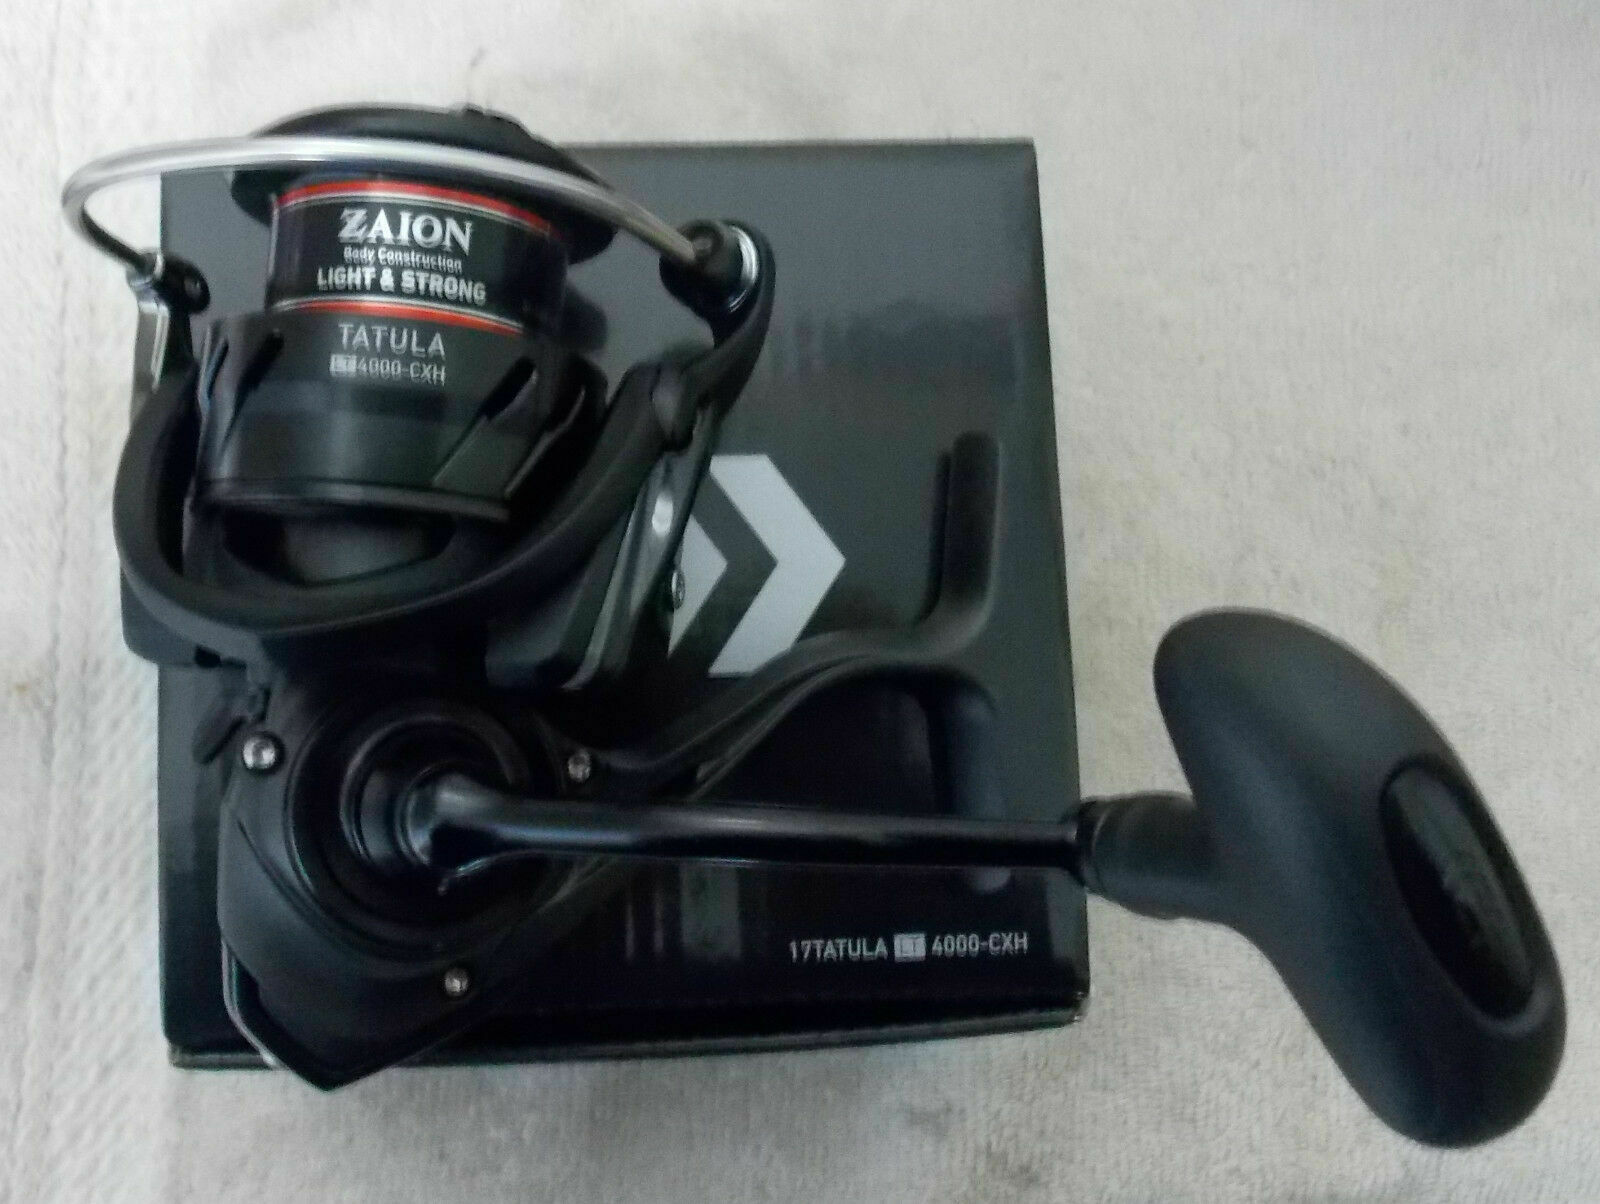 Daiwa Tatula TALT4000-CXH Spinning Fishing Reel